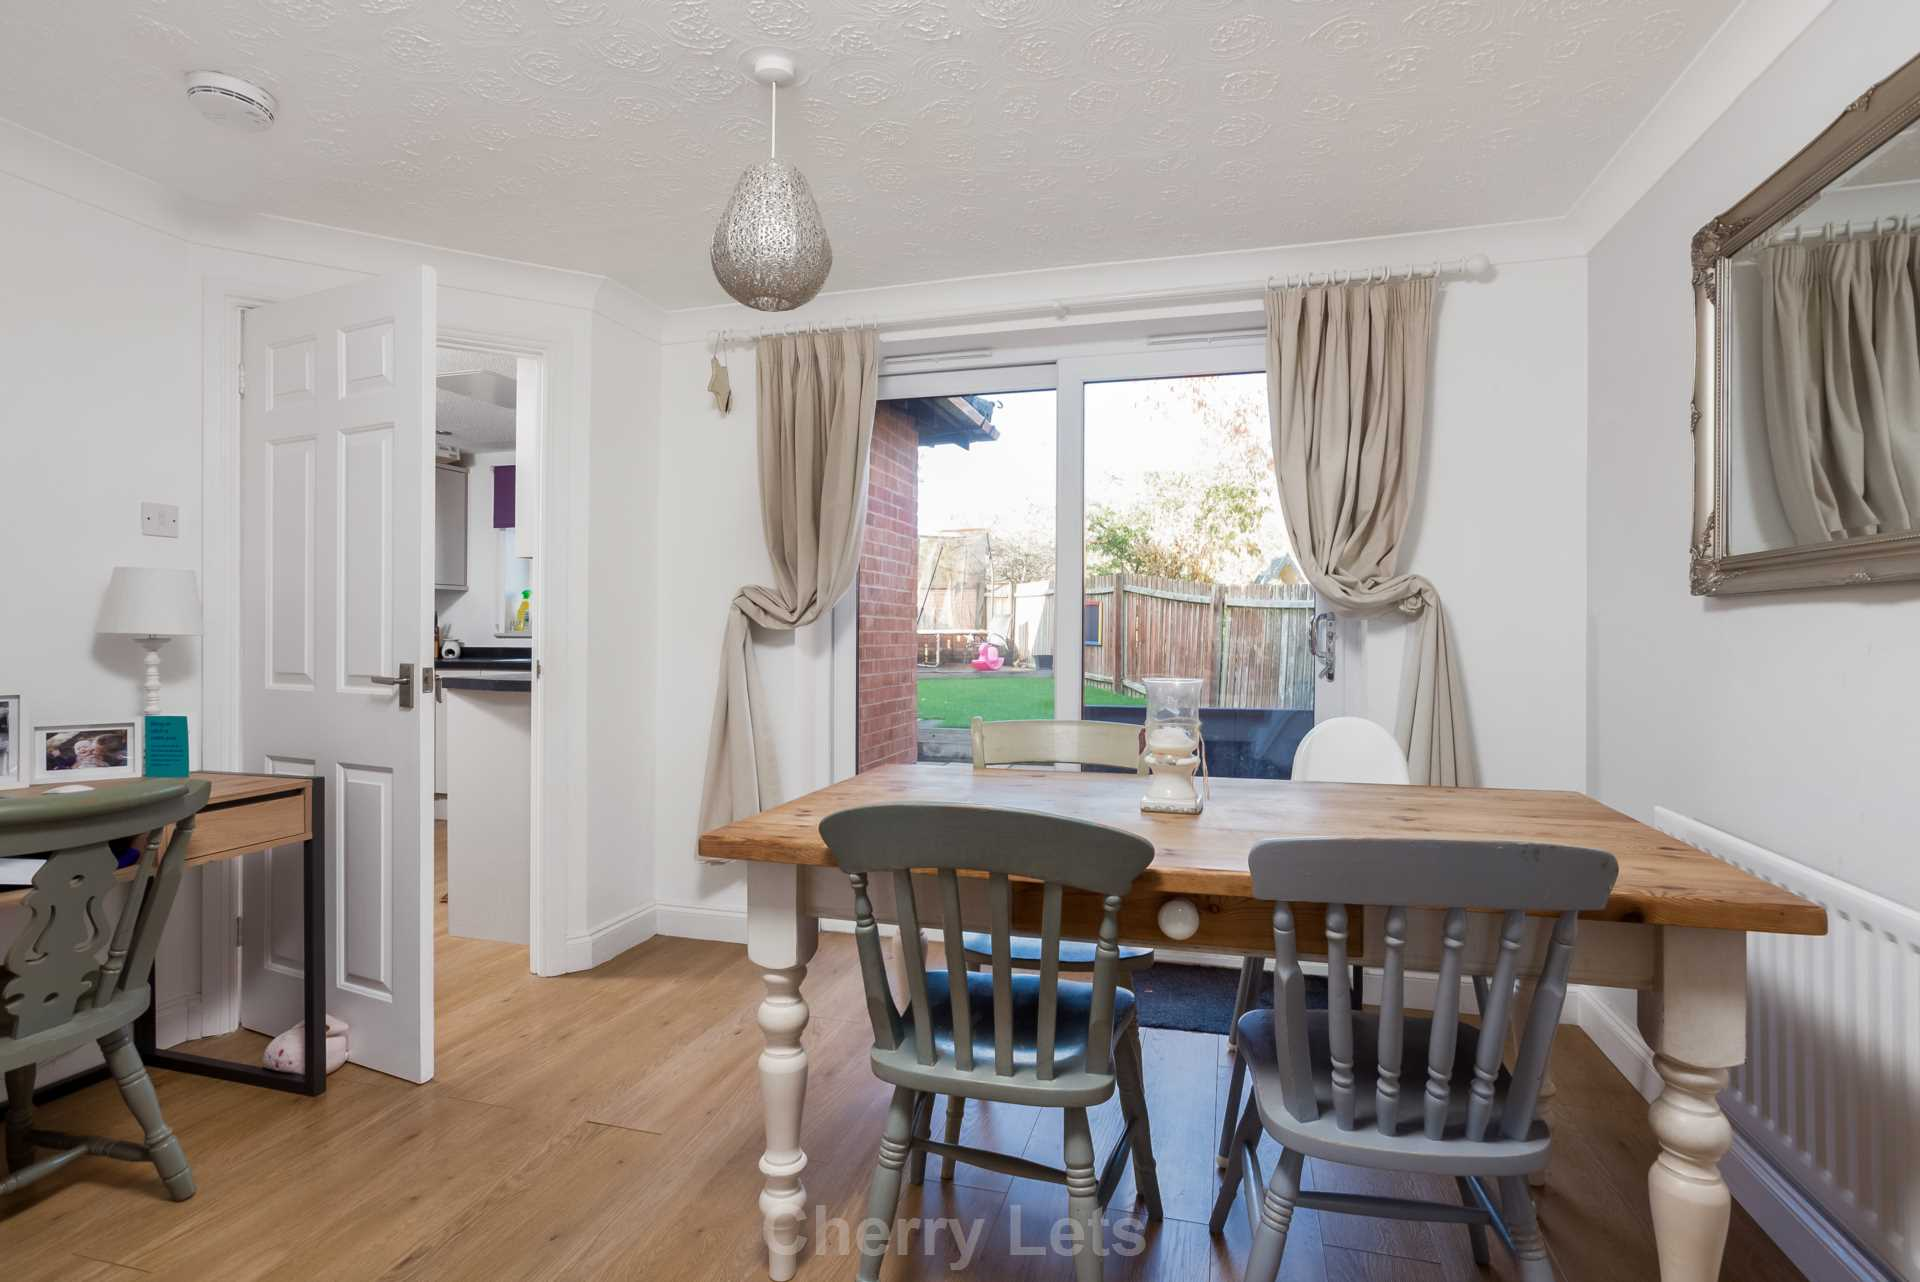 3 bed detached house to rent in Mill Close, Deddington, OX15 2